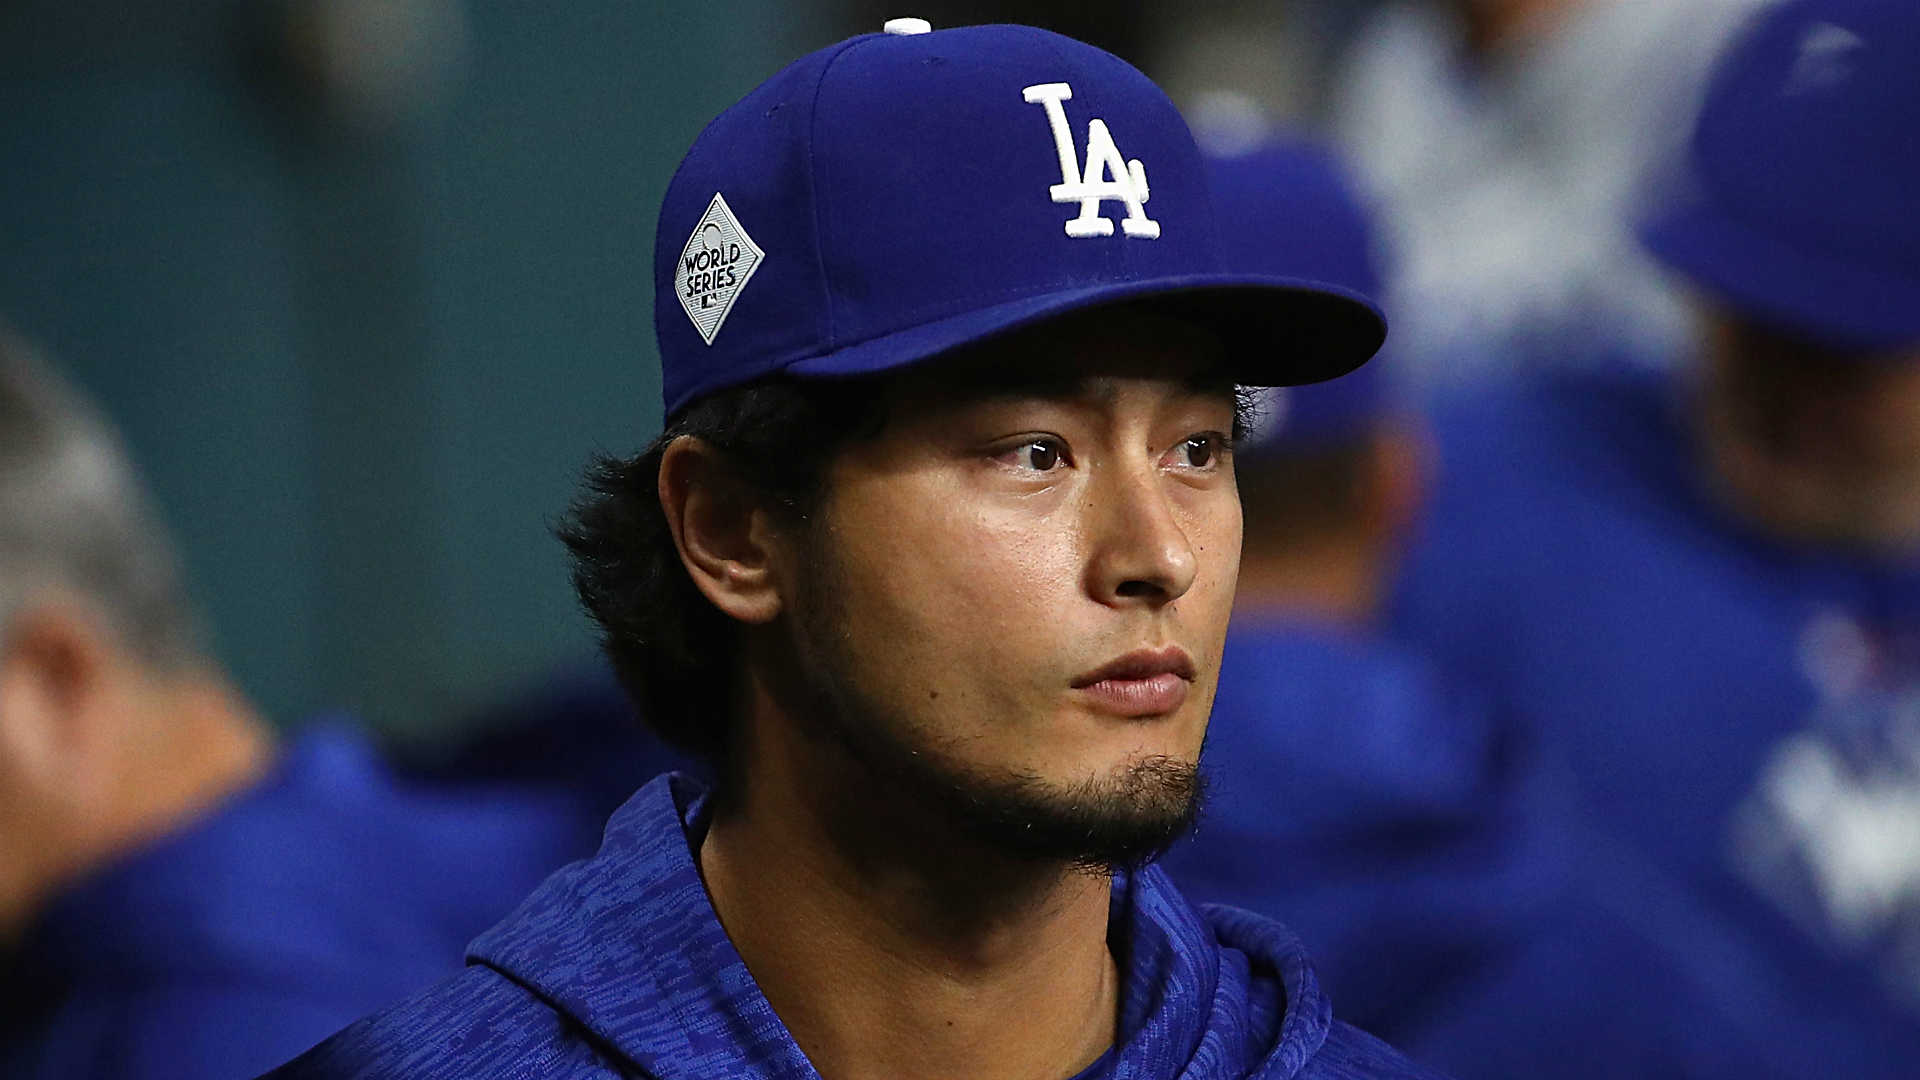 Yu Darvish agrees to 6-year, $126M deal with Cubs